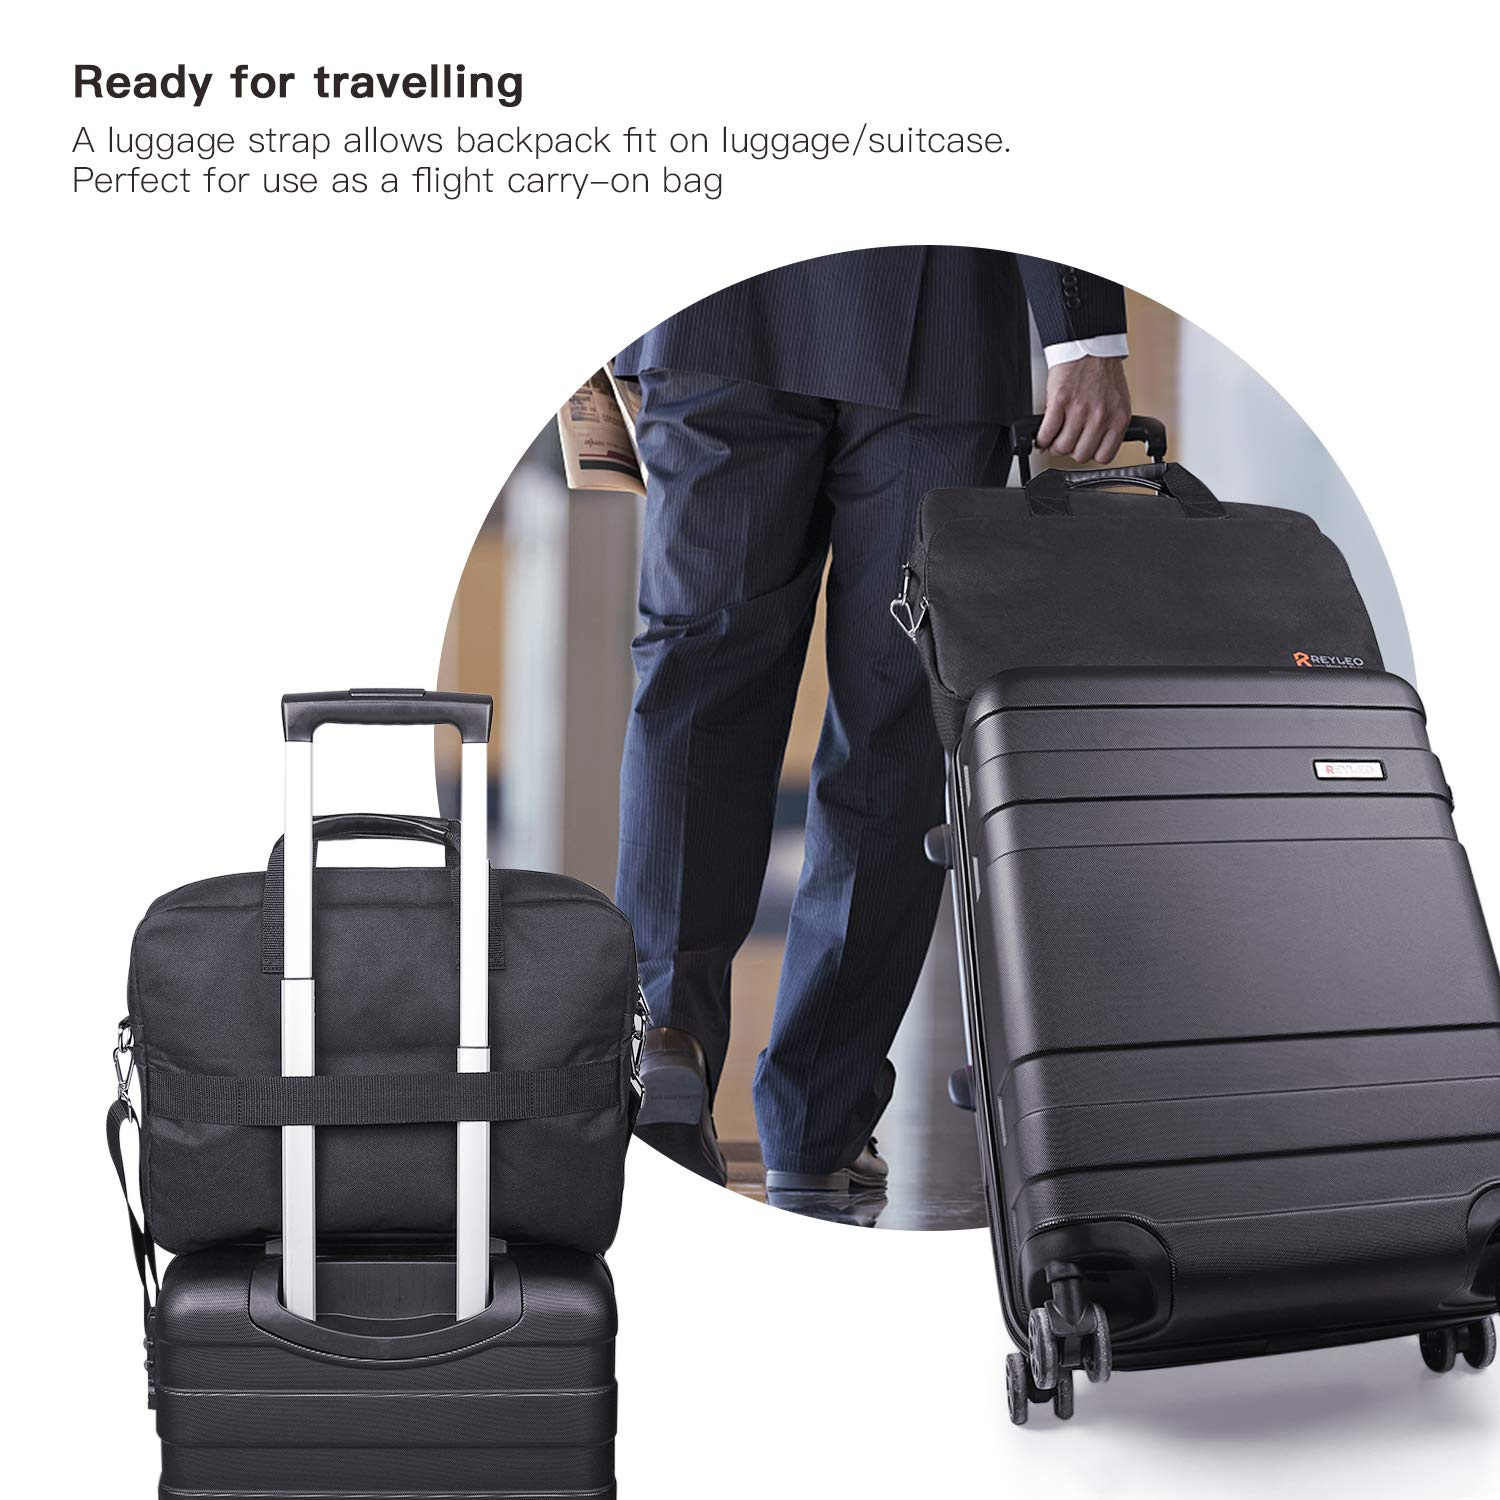 REYLEO 15.6 Inch Laptop Bag Travel Briefcase with Luggage Strap Water Resistant Shoulder Bag Business Messenger Briefcases for Men and Women Fits Laptop Computer Tablet, LCB1B by REYLEO (Image #5)